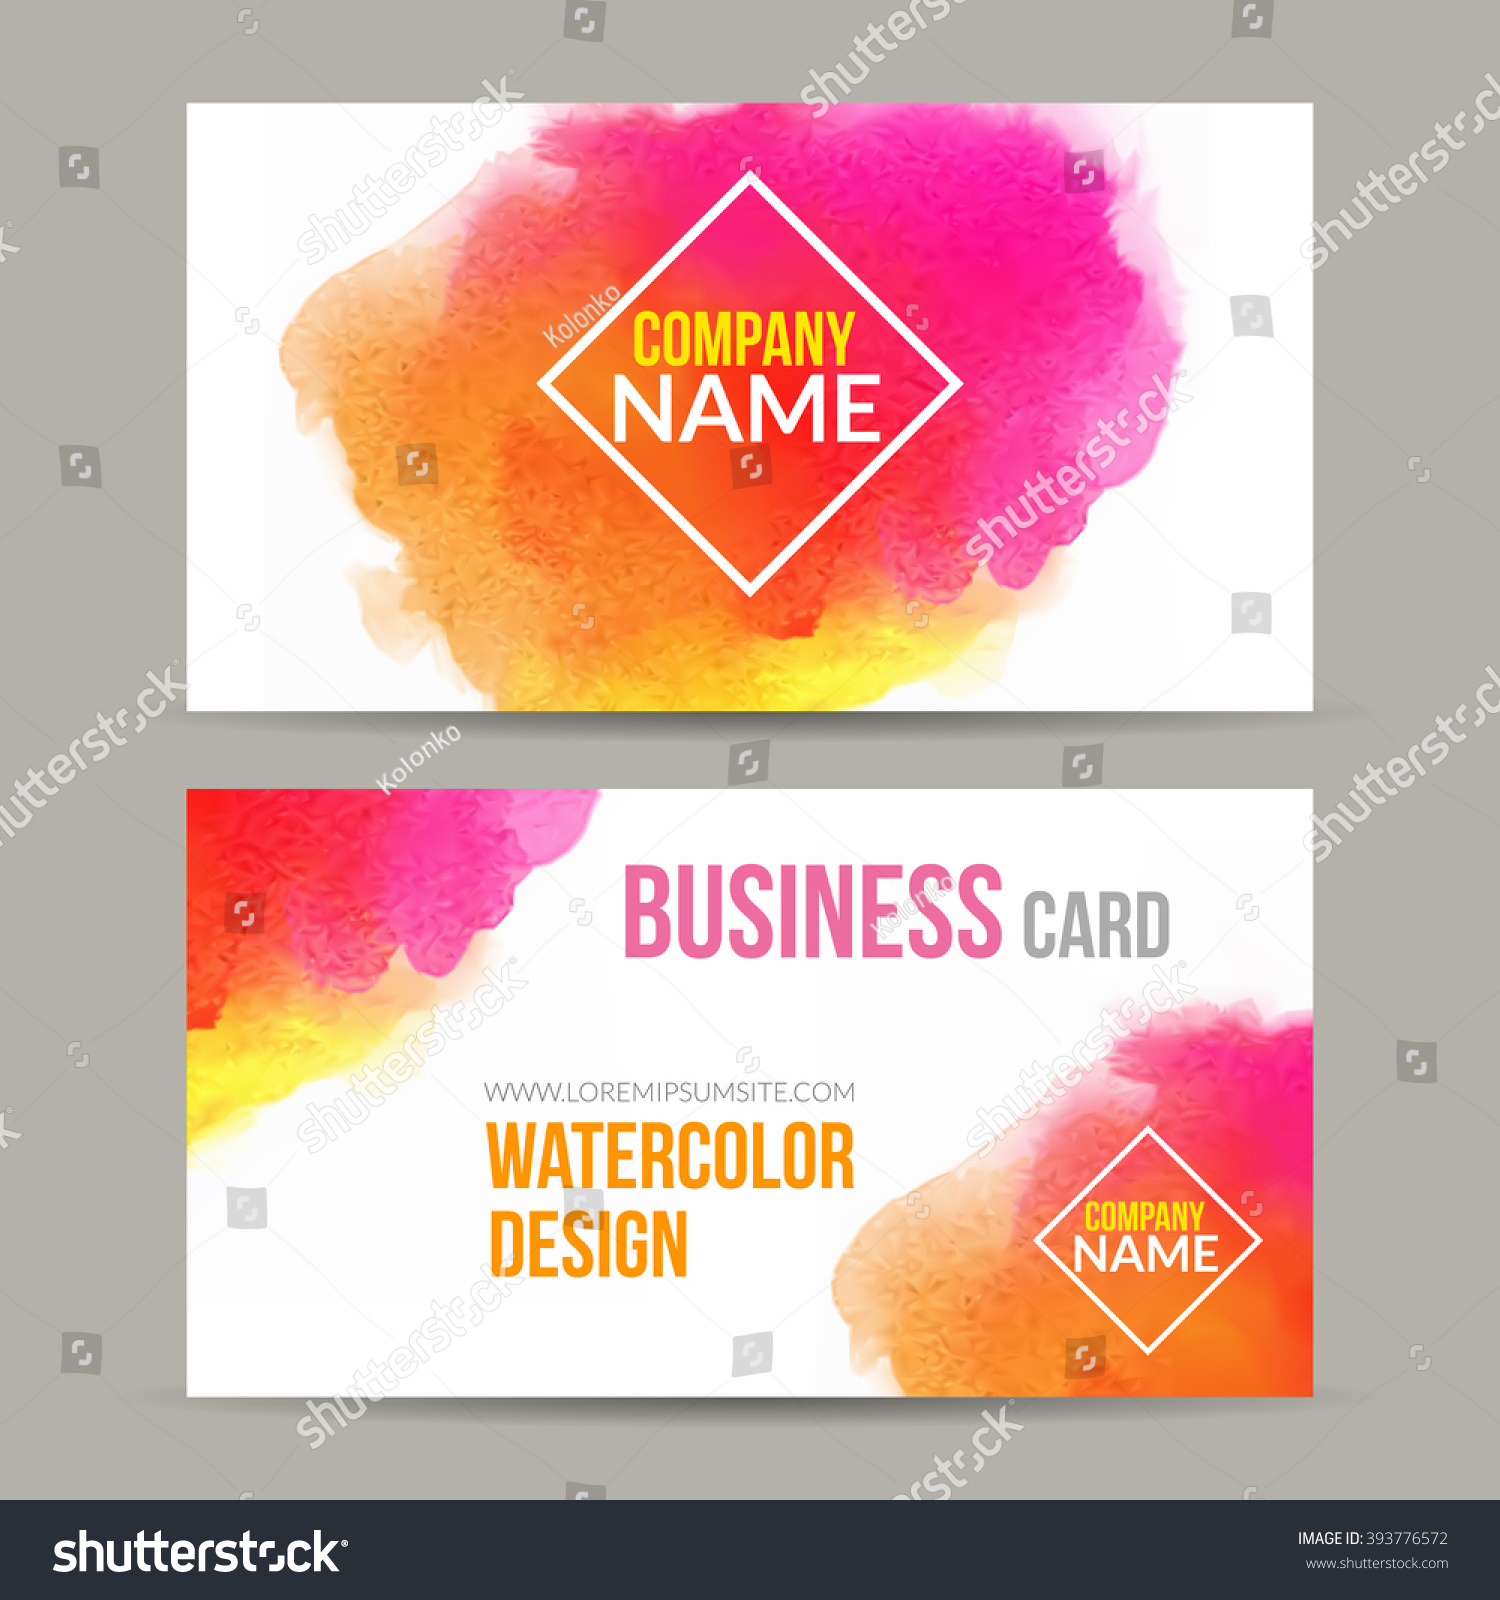 Vector Business Cards Template Watercolor Paint Stock Vector - Painter business card template